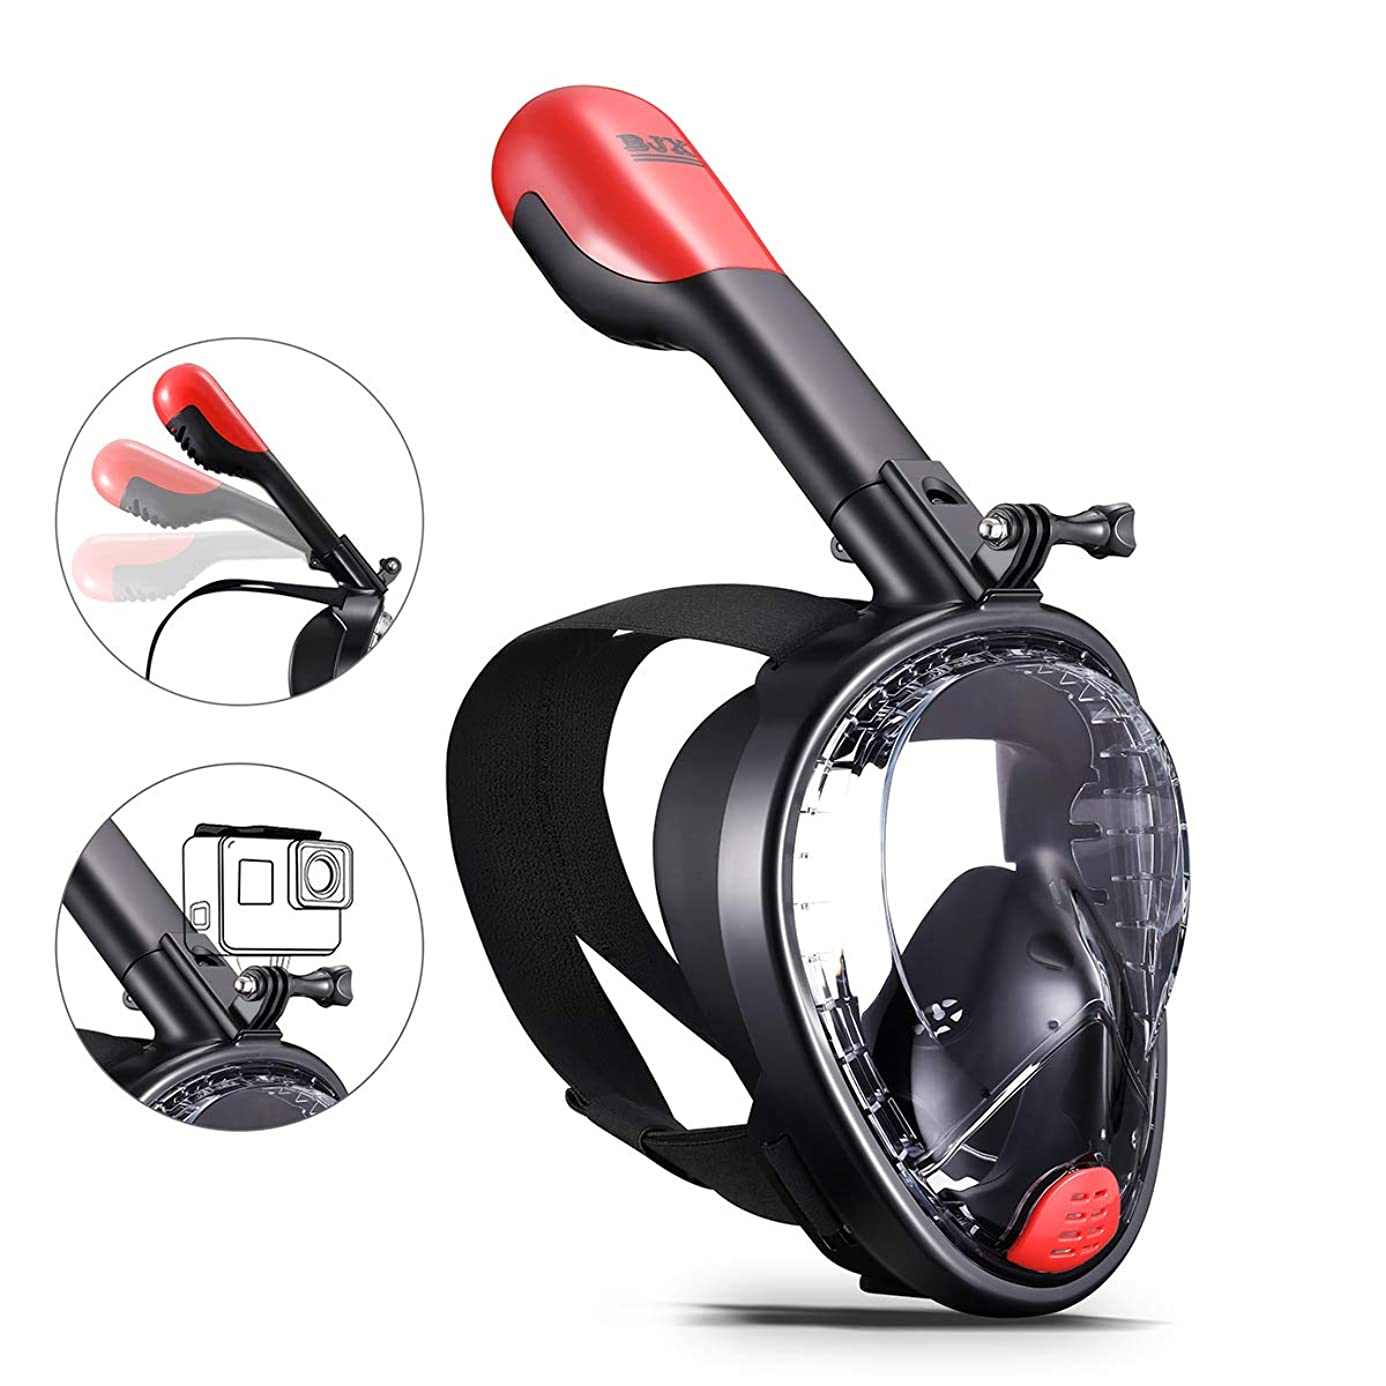 BJX Full Face Snorkel Mask,180° Panoramic View, Free Breathing,Protect Against Dangerous CO2 Build-Up,Dry Top Set Anti-Fog Anti-Leak Universal Size for Adults